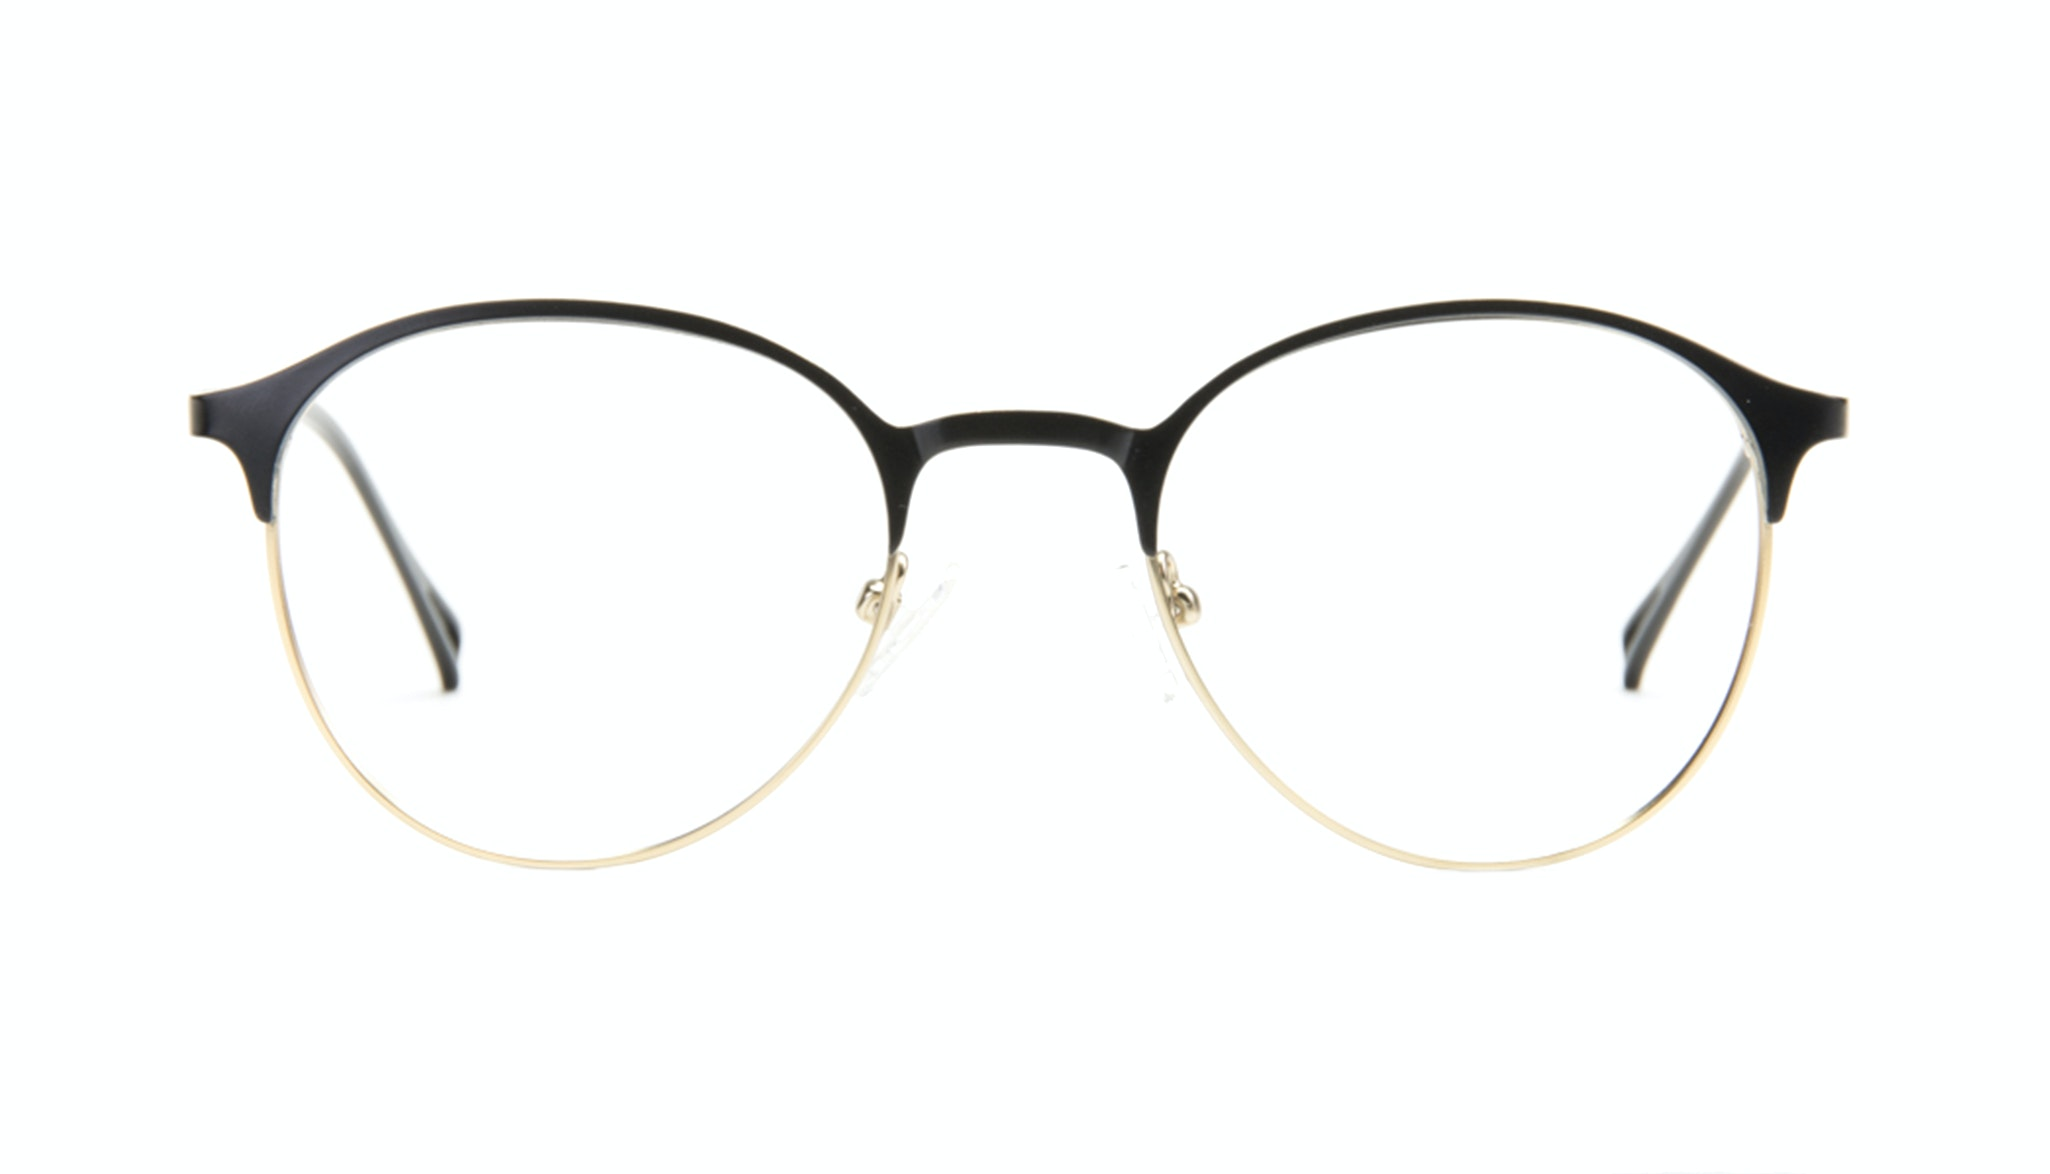 Affordable Fashion Glasses Round Eyeglasses Women Bay Deep Gold Front